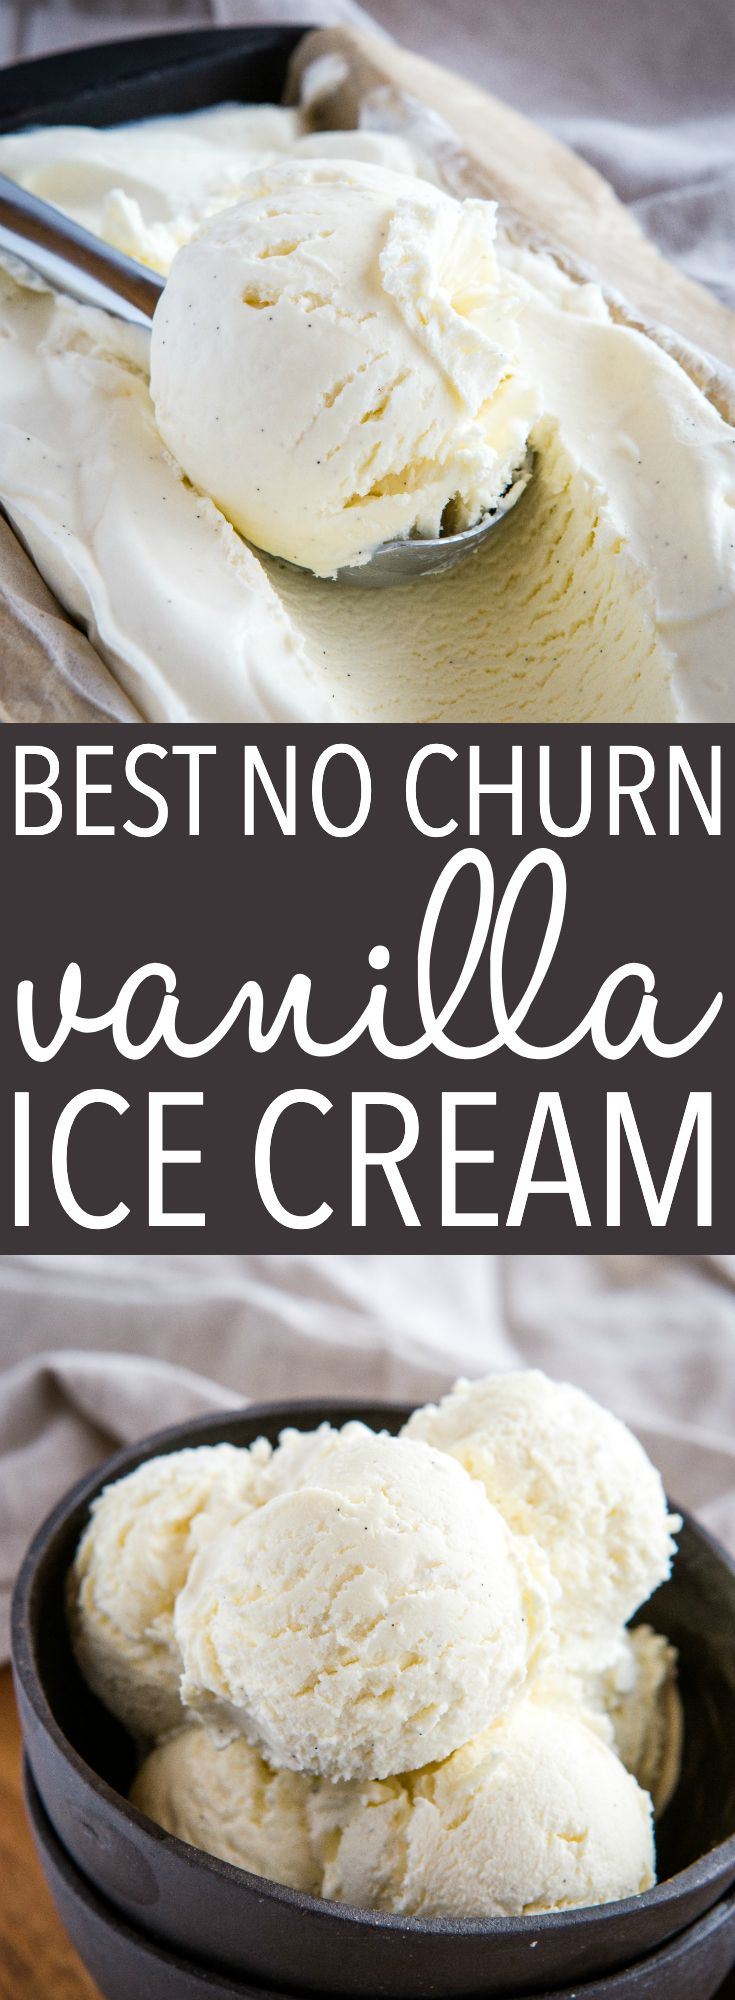 Best Ever No Churn Vanilla Ice Cream #ketoicecream